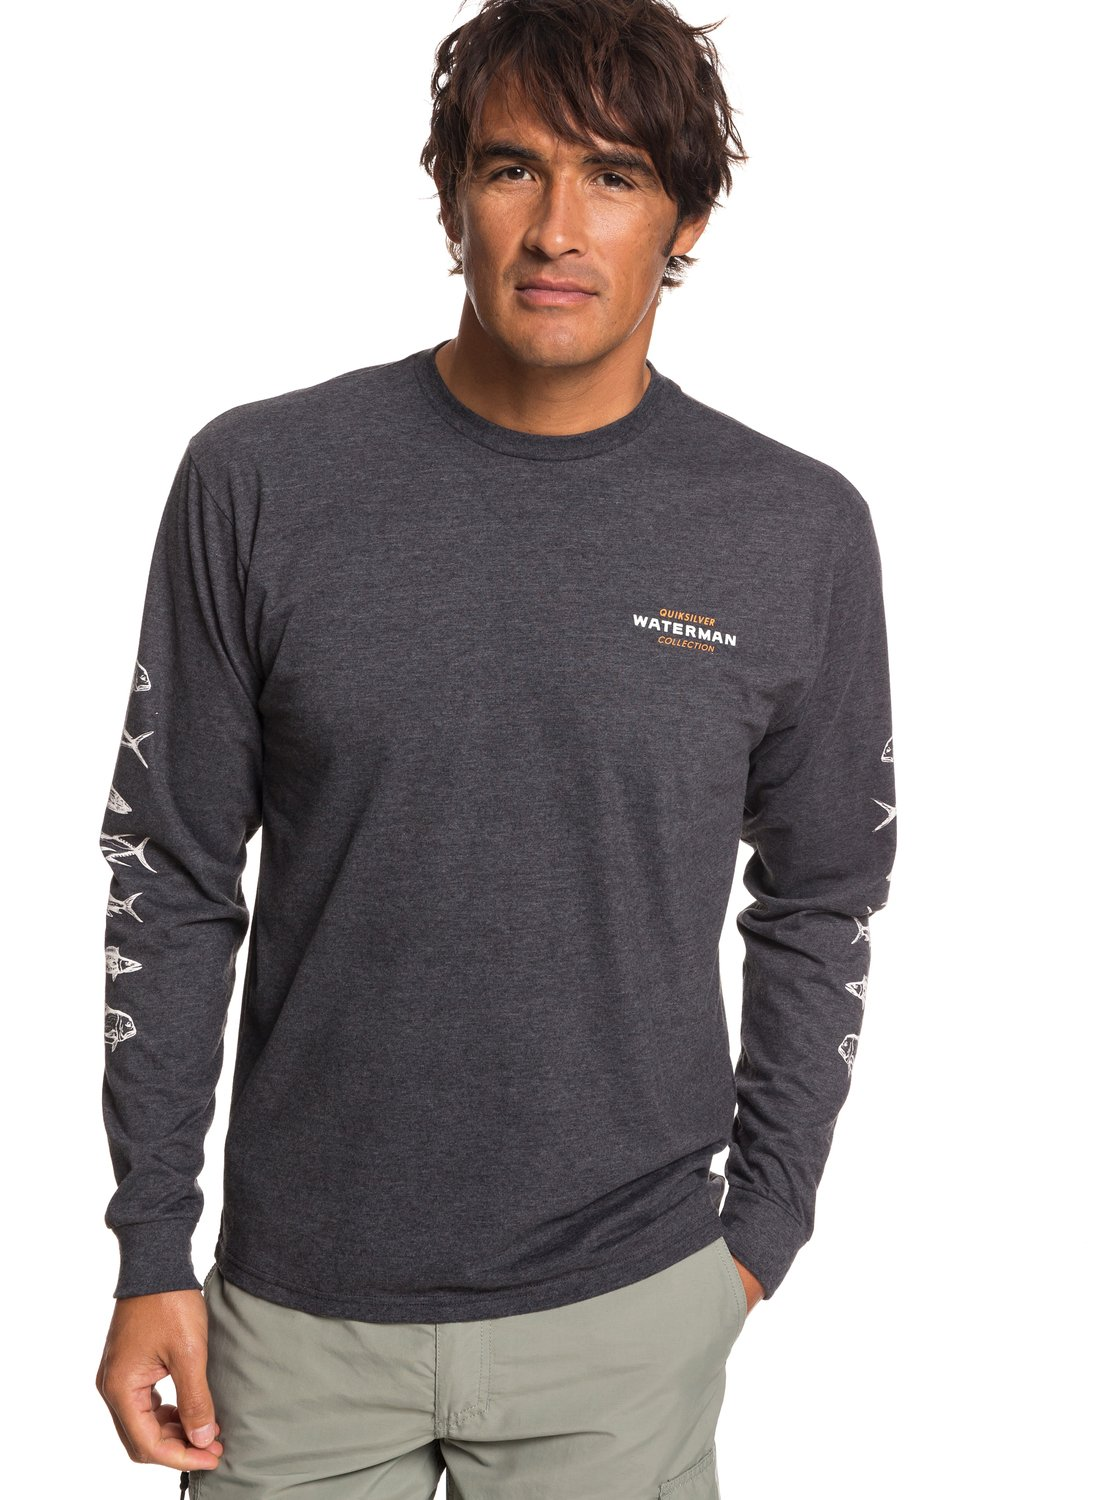 a569e1a92483 0 Waterman Aztec Fish Long Sleeve Tee Black AQMZT03356 Quiksilver